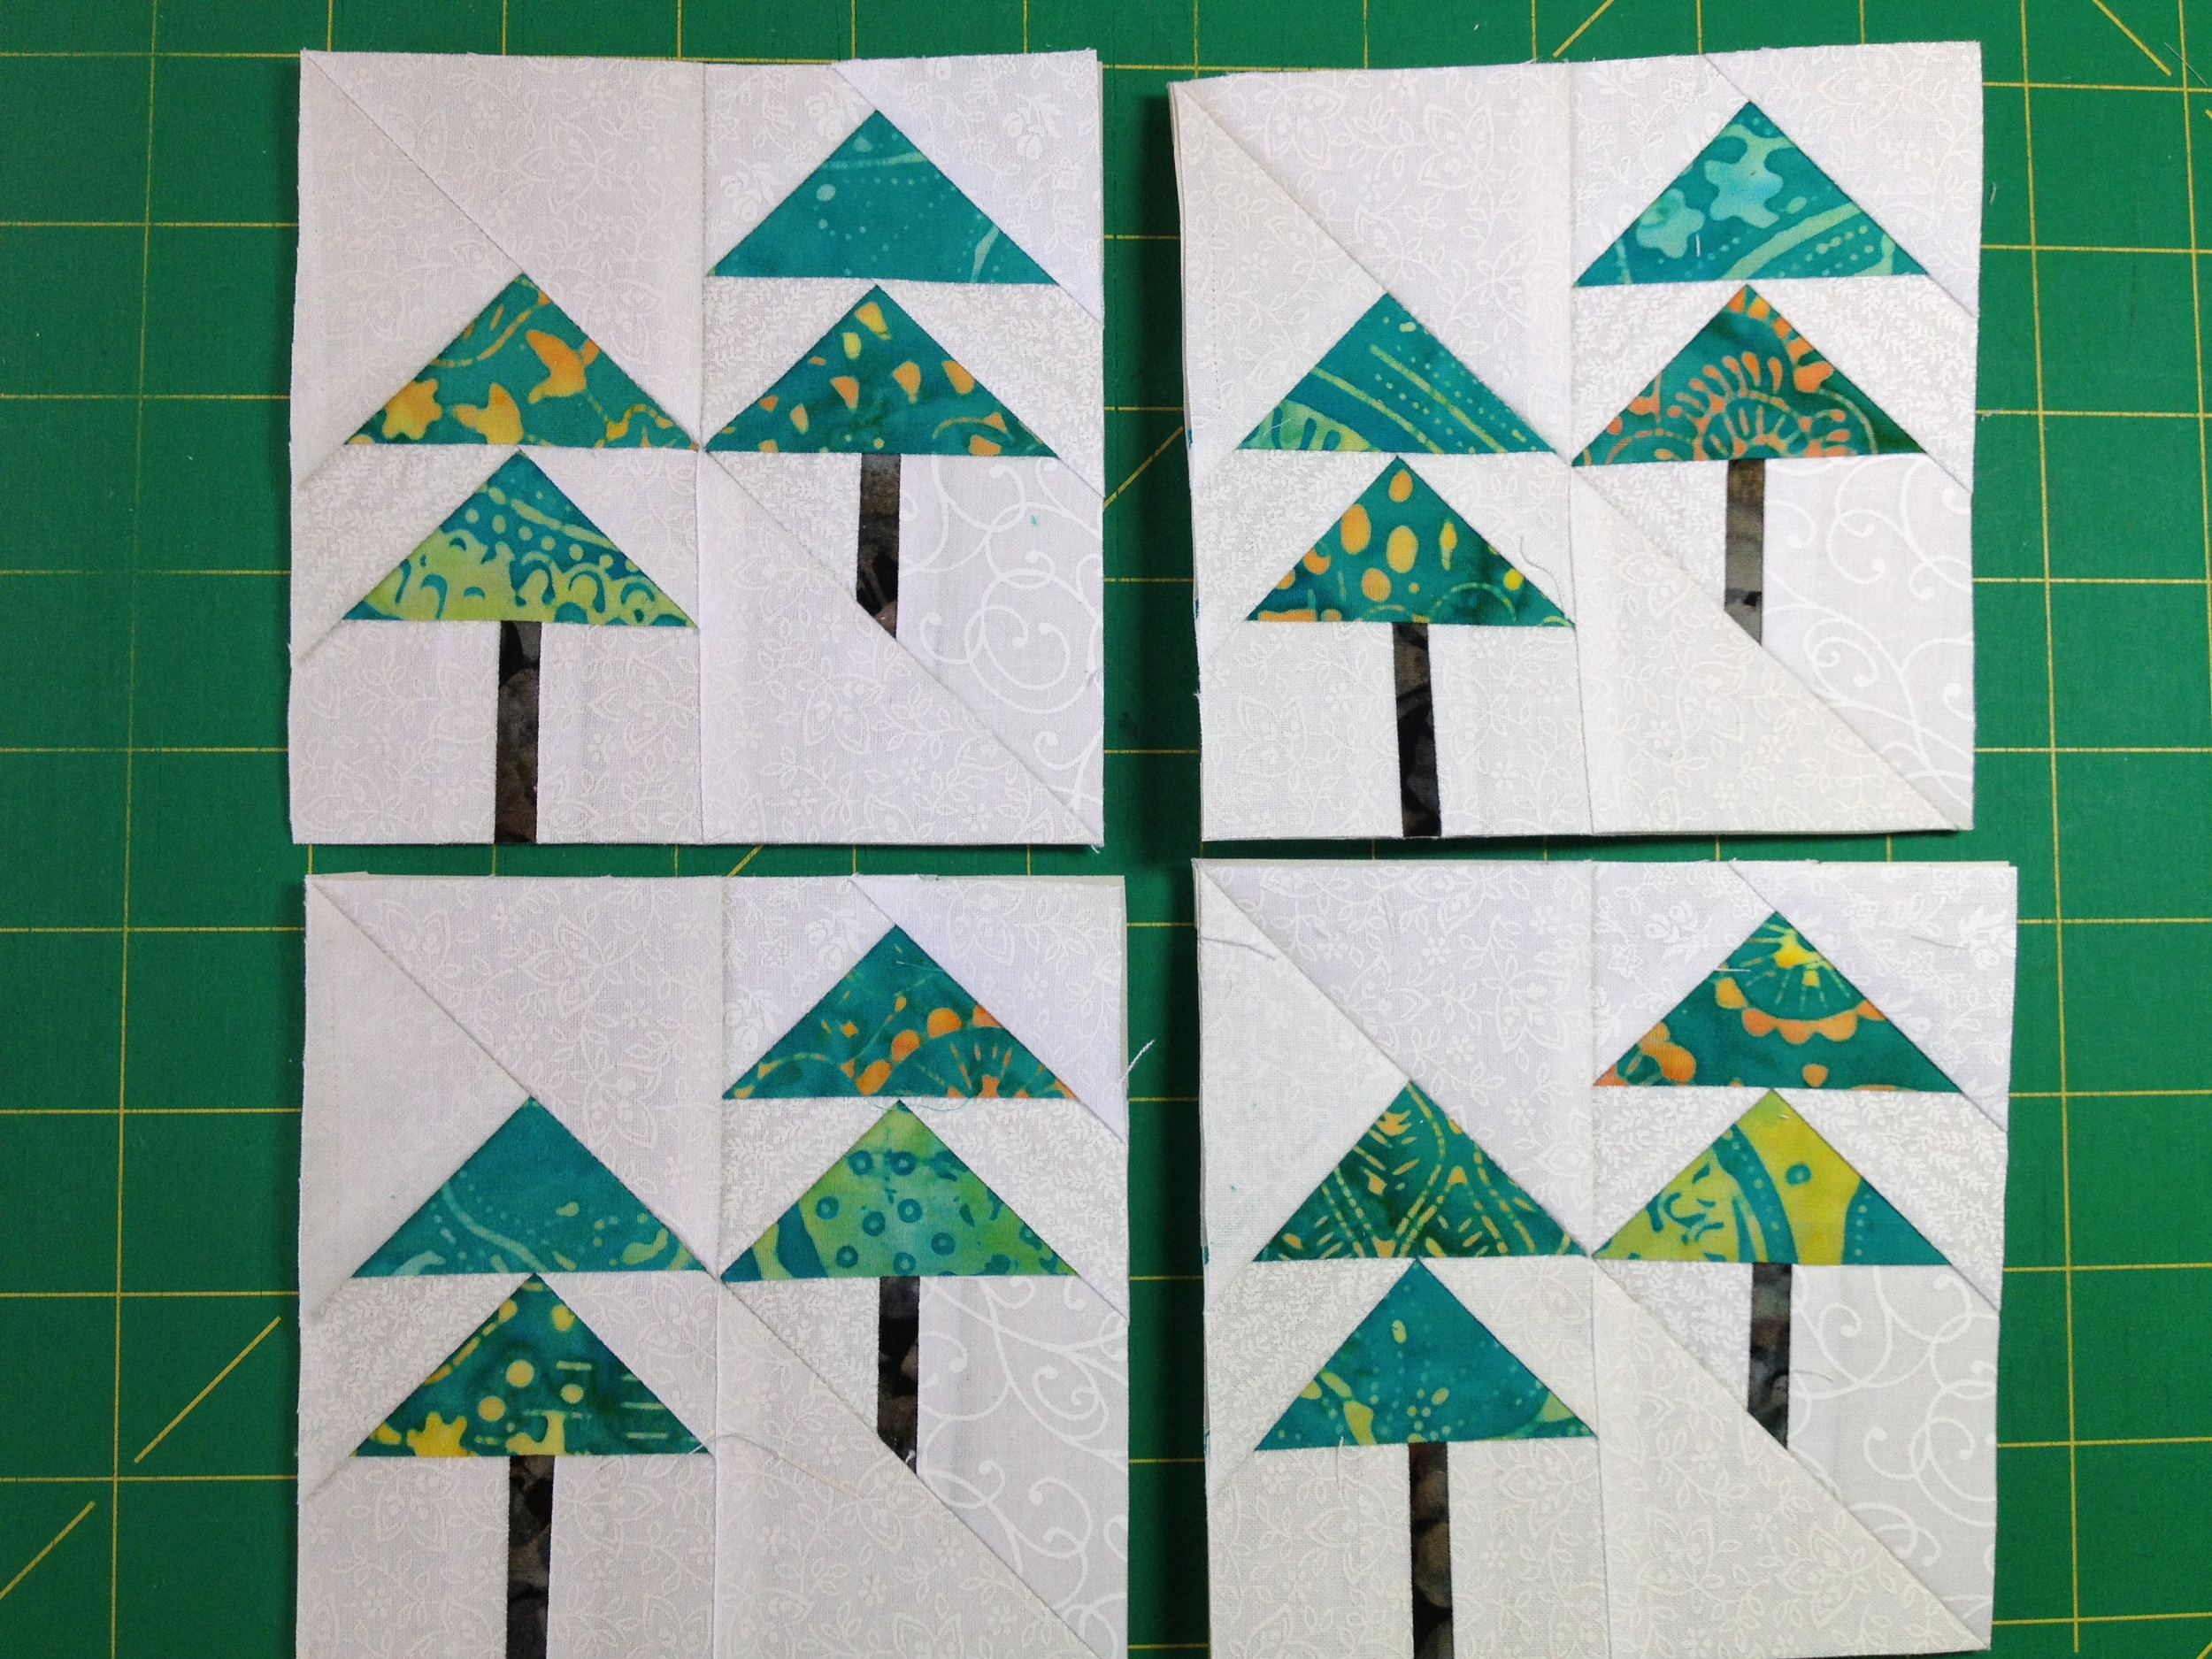 April blocks. Not as fond of these just 'cause trees were too small to do much with, but they work.